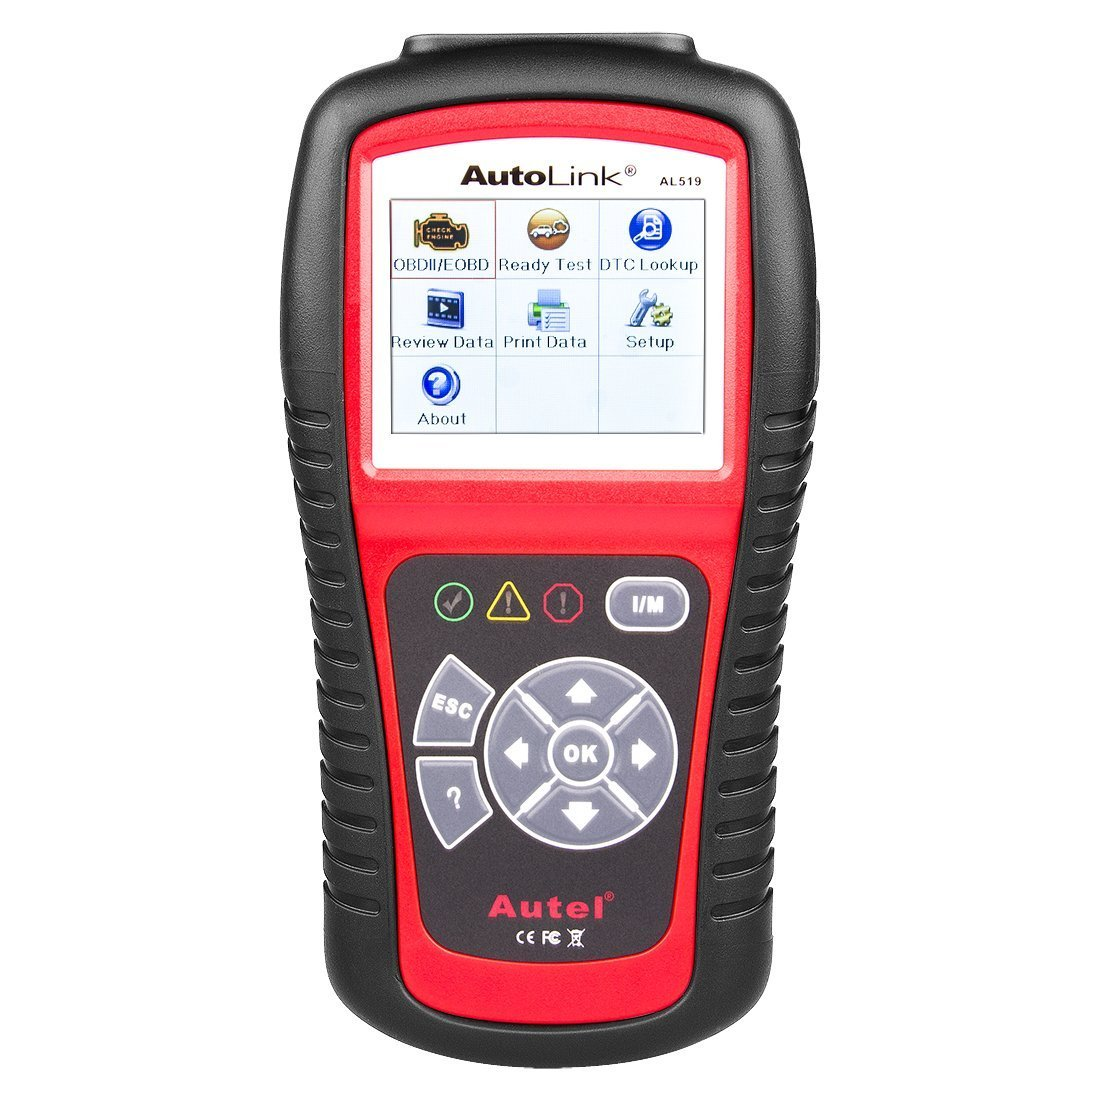 Autel AL519 AutoLink Enhanced OBD ll Scan Tool with Mode 6